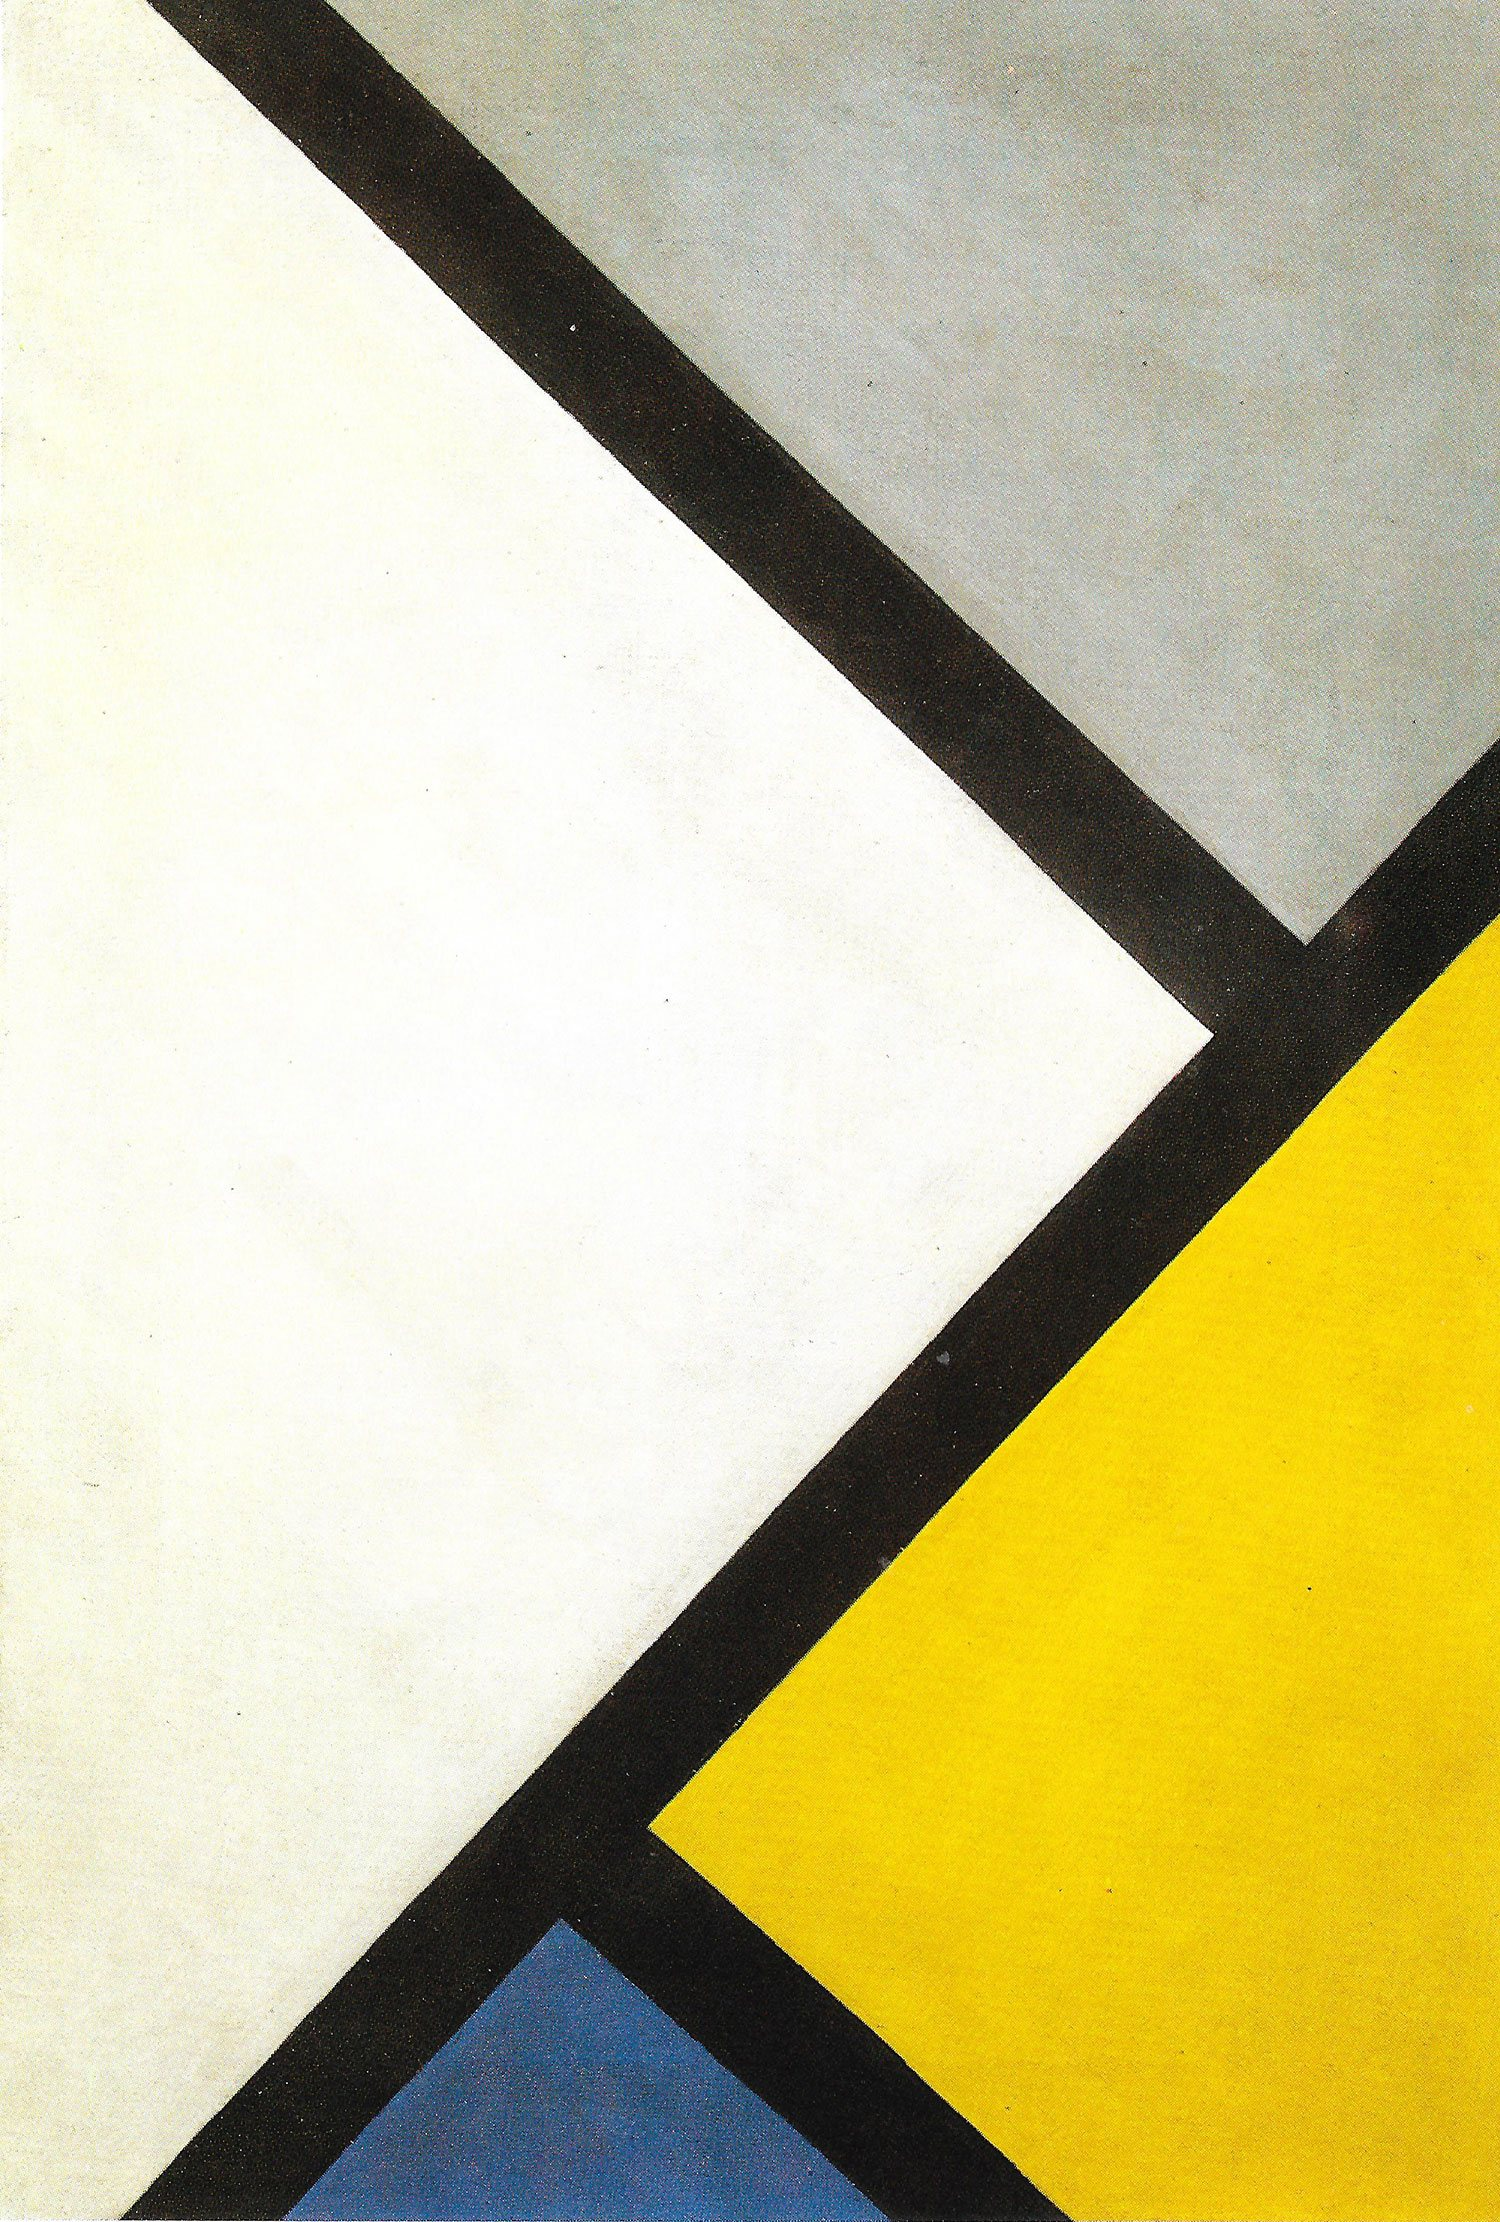 Domela-César,De-Stijl-Composition,1926